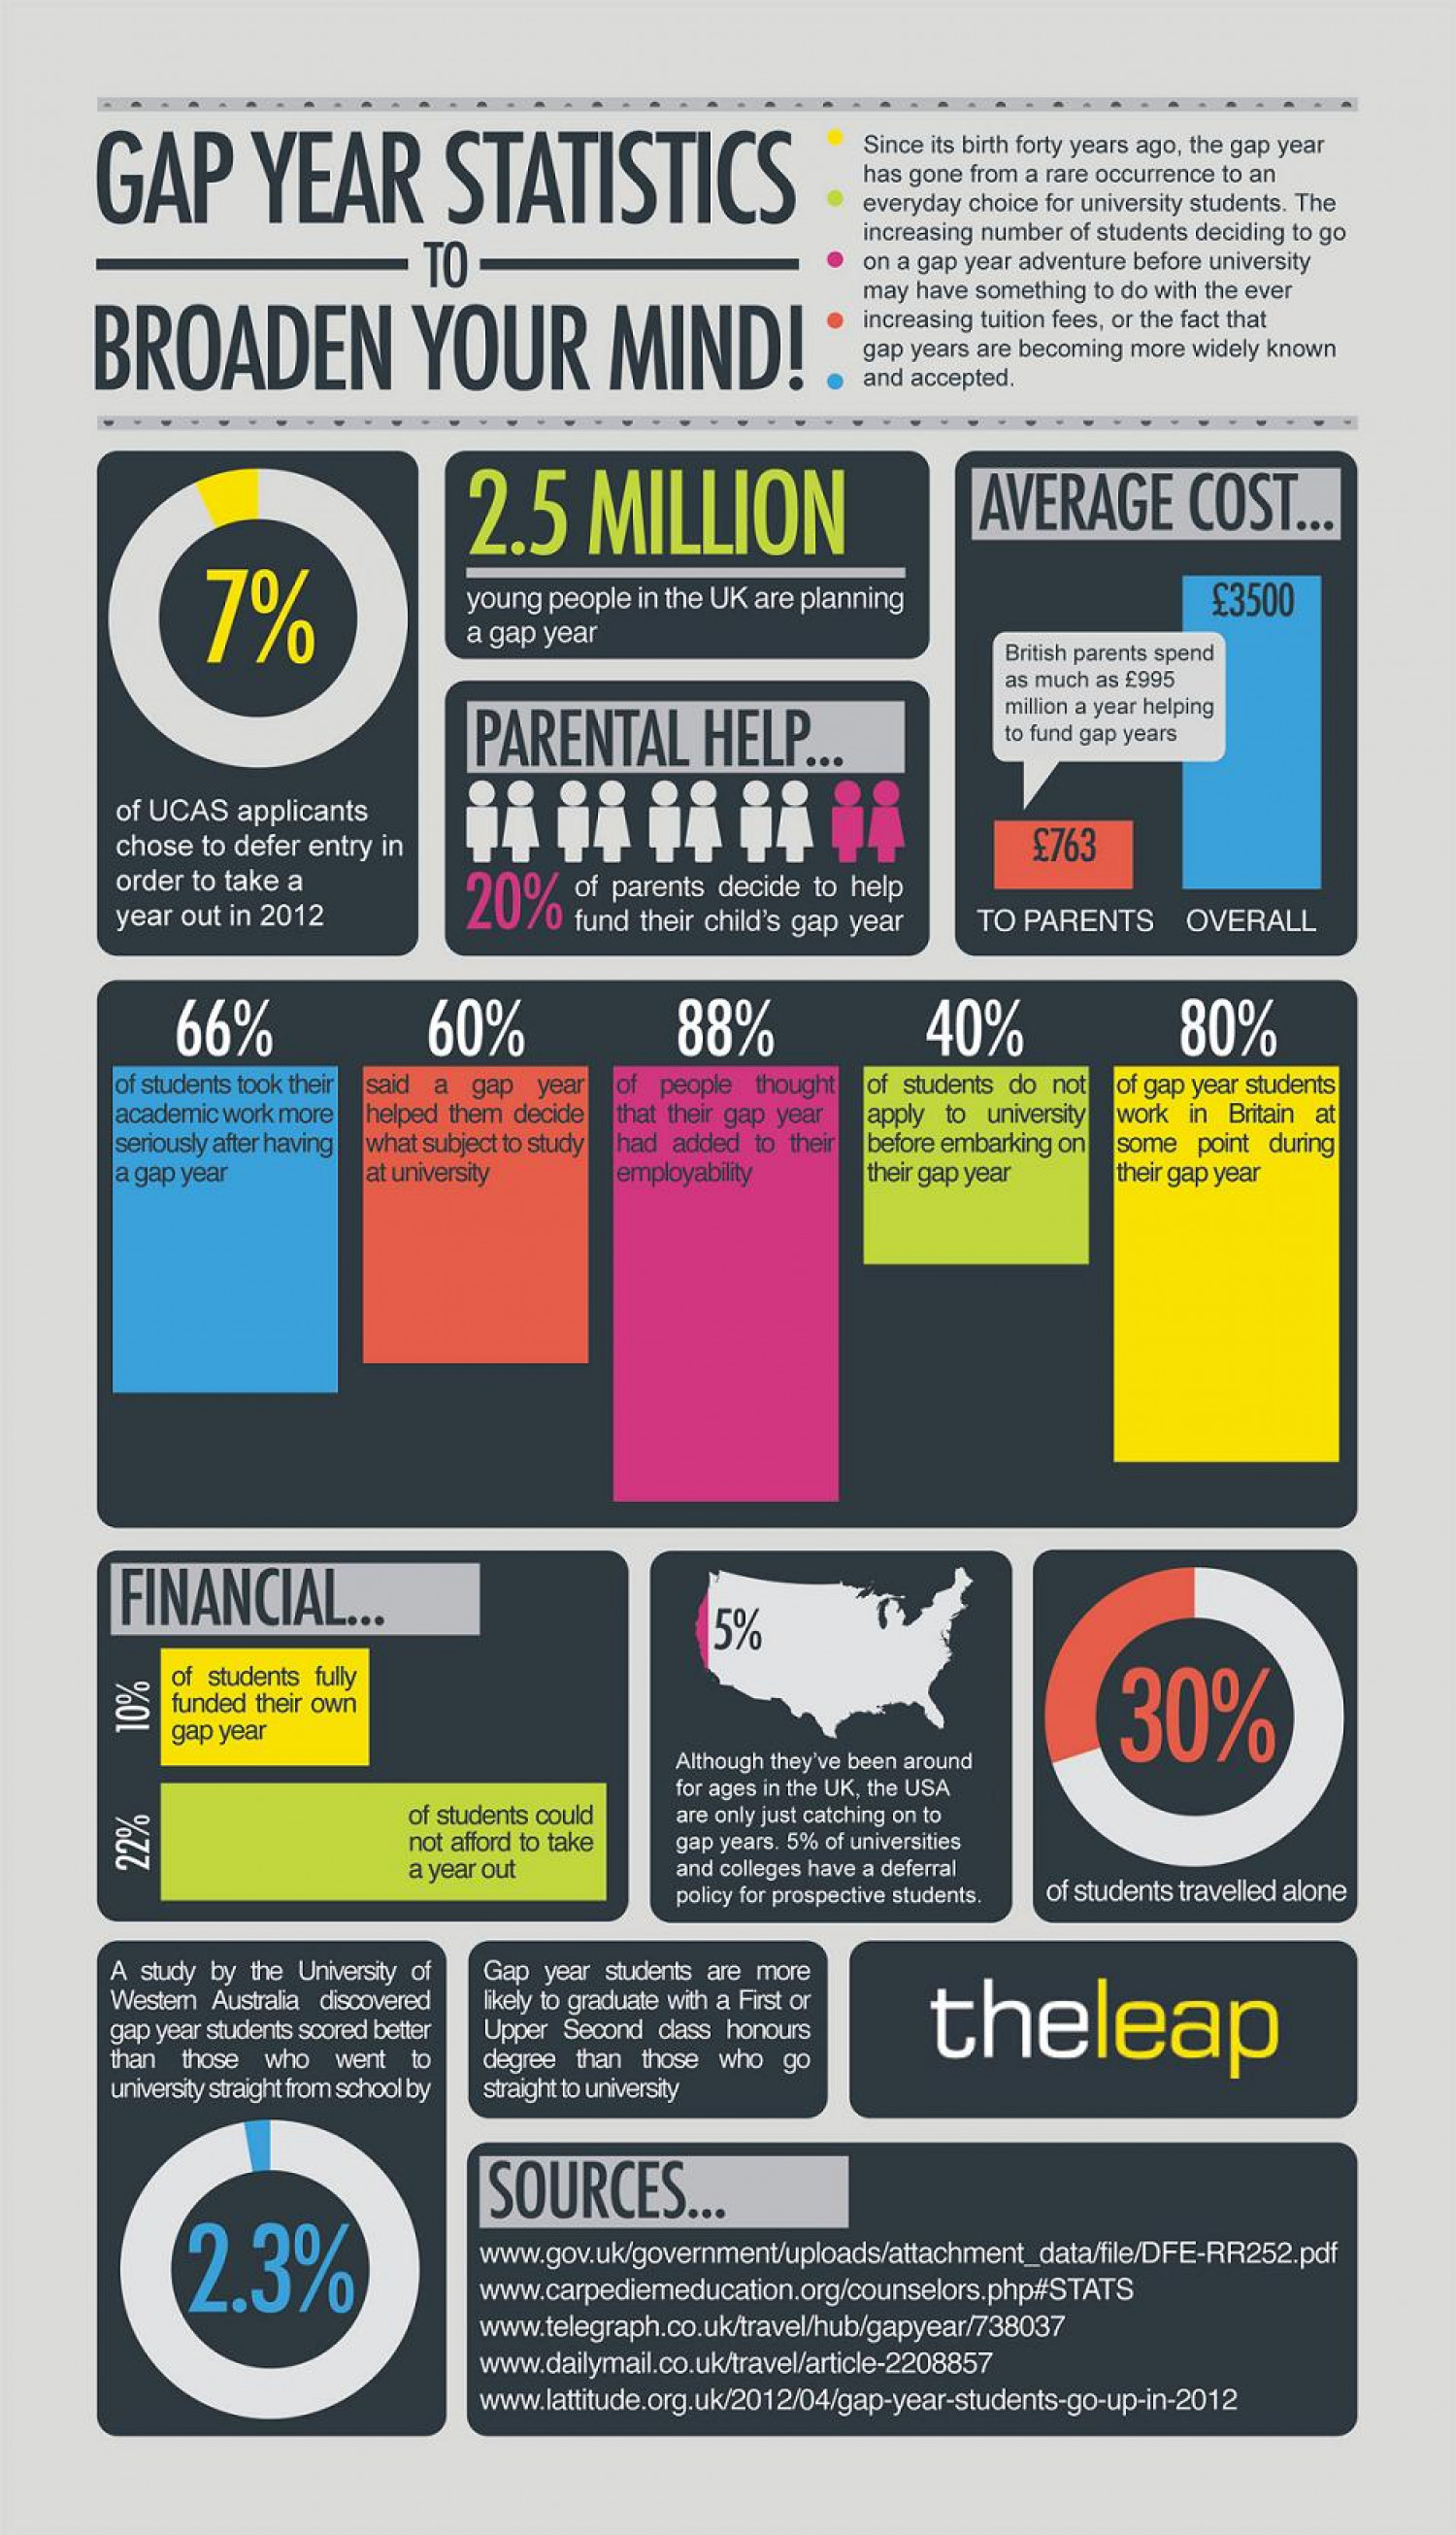 Gap Year Statistics to Broaden Your Mind! Infographic